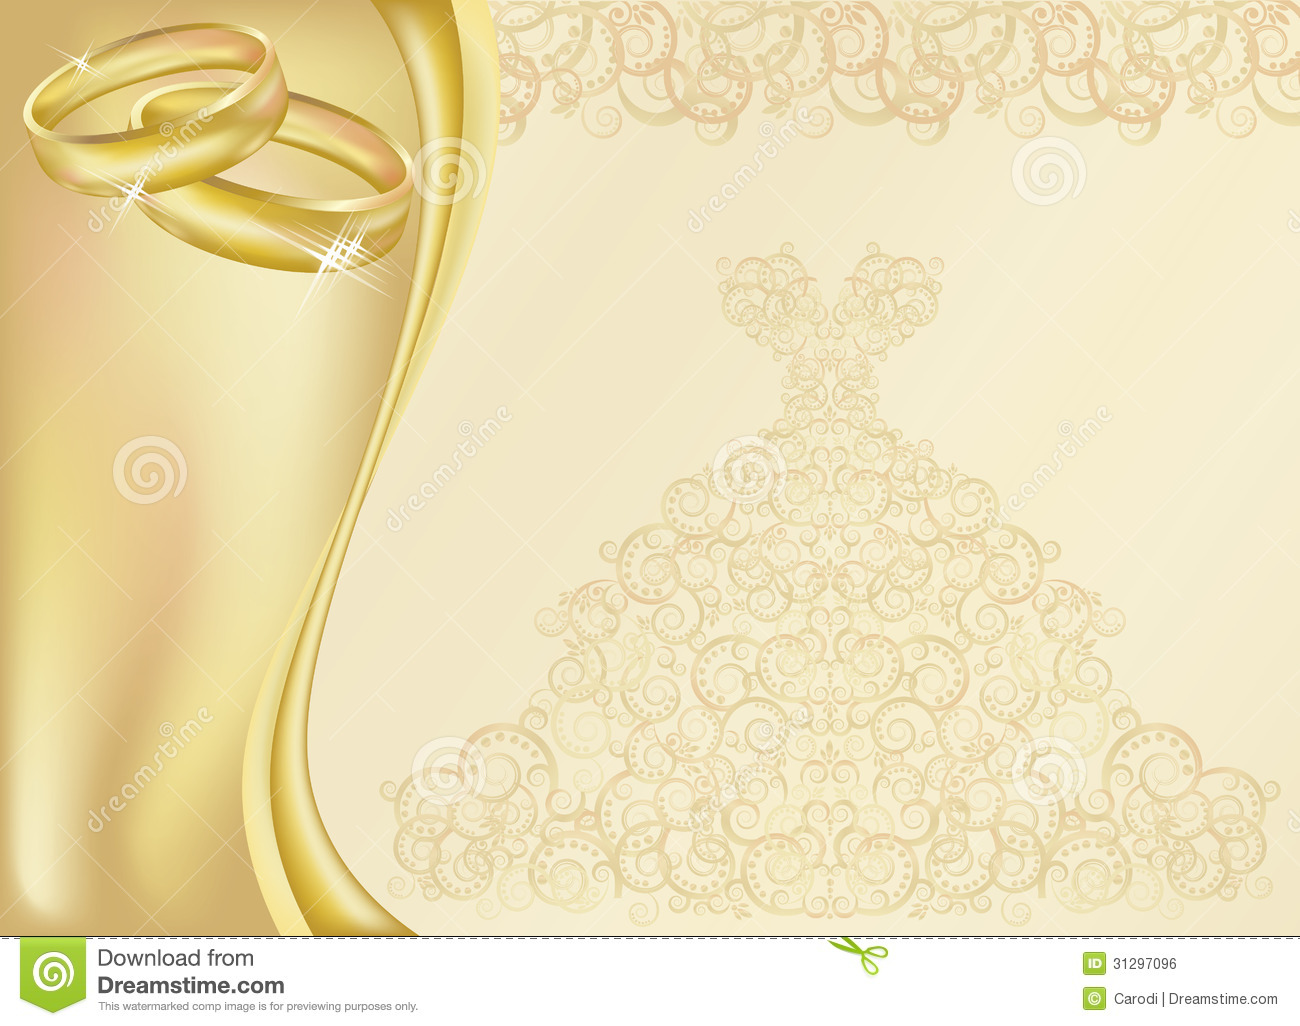 Gold Invitation Card with luxury invitations layout